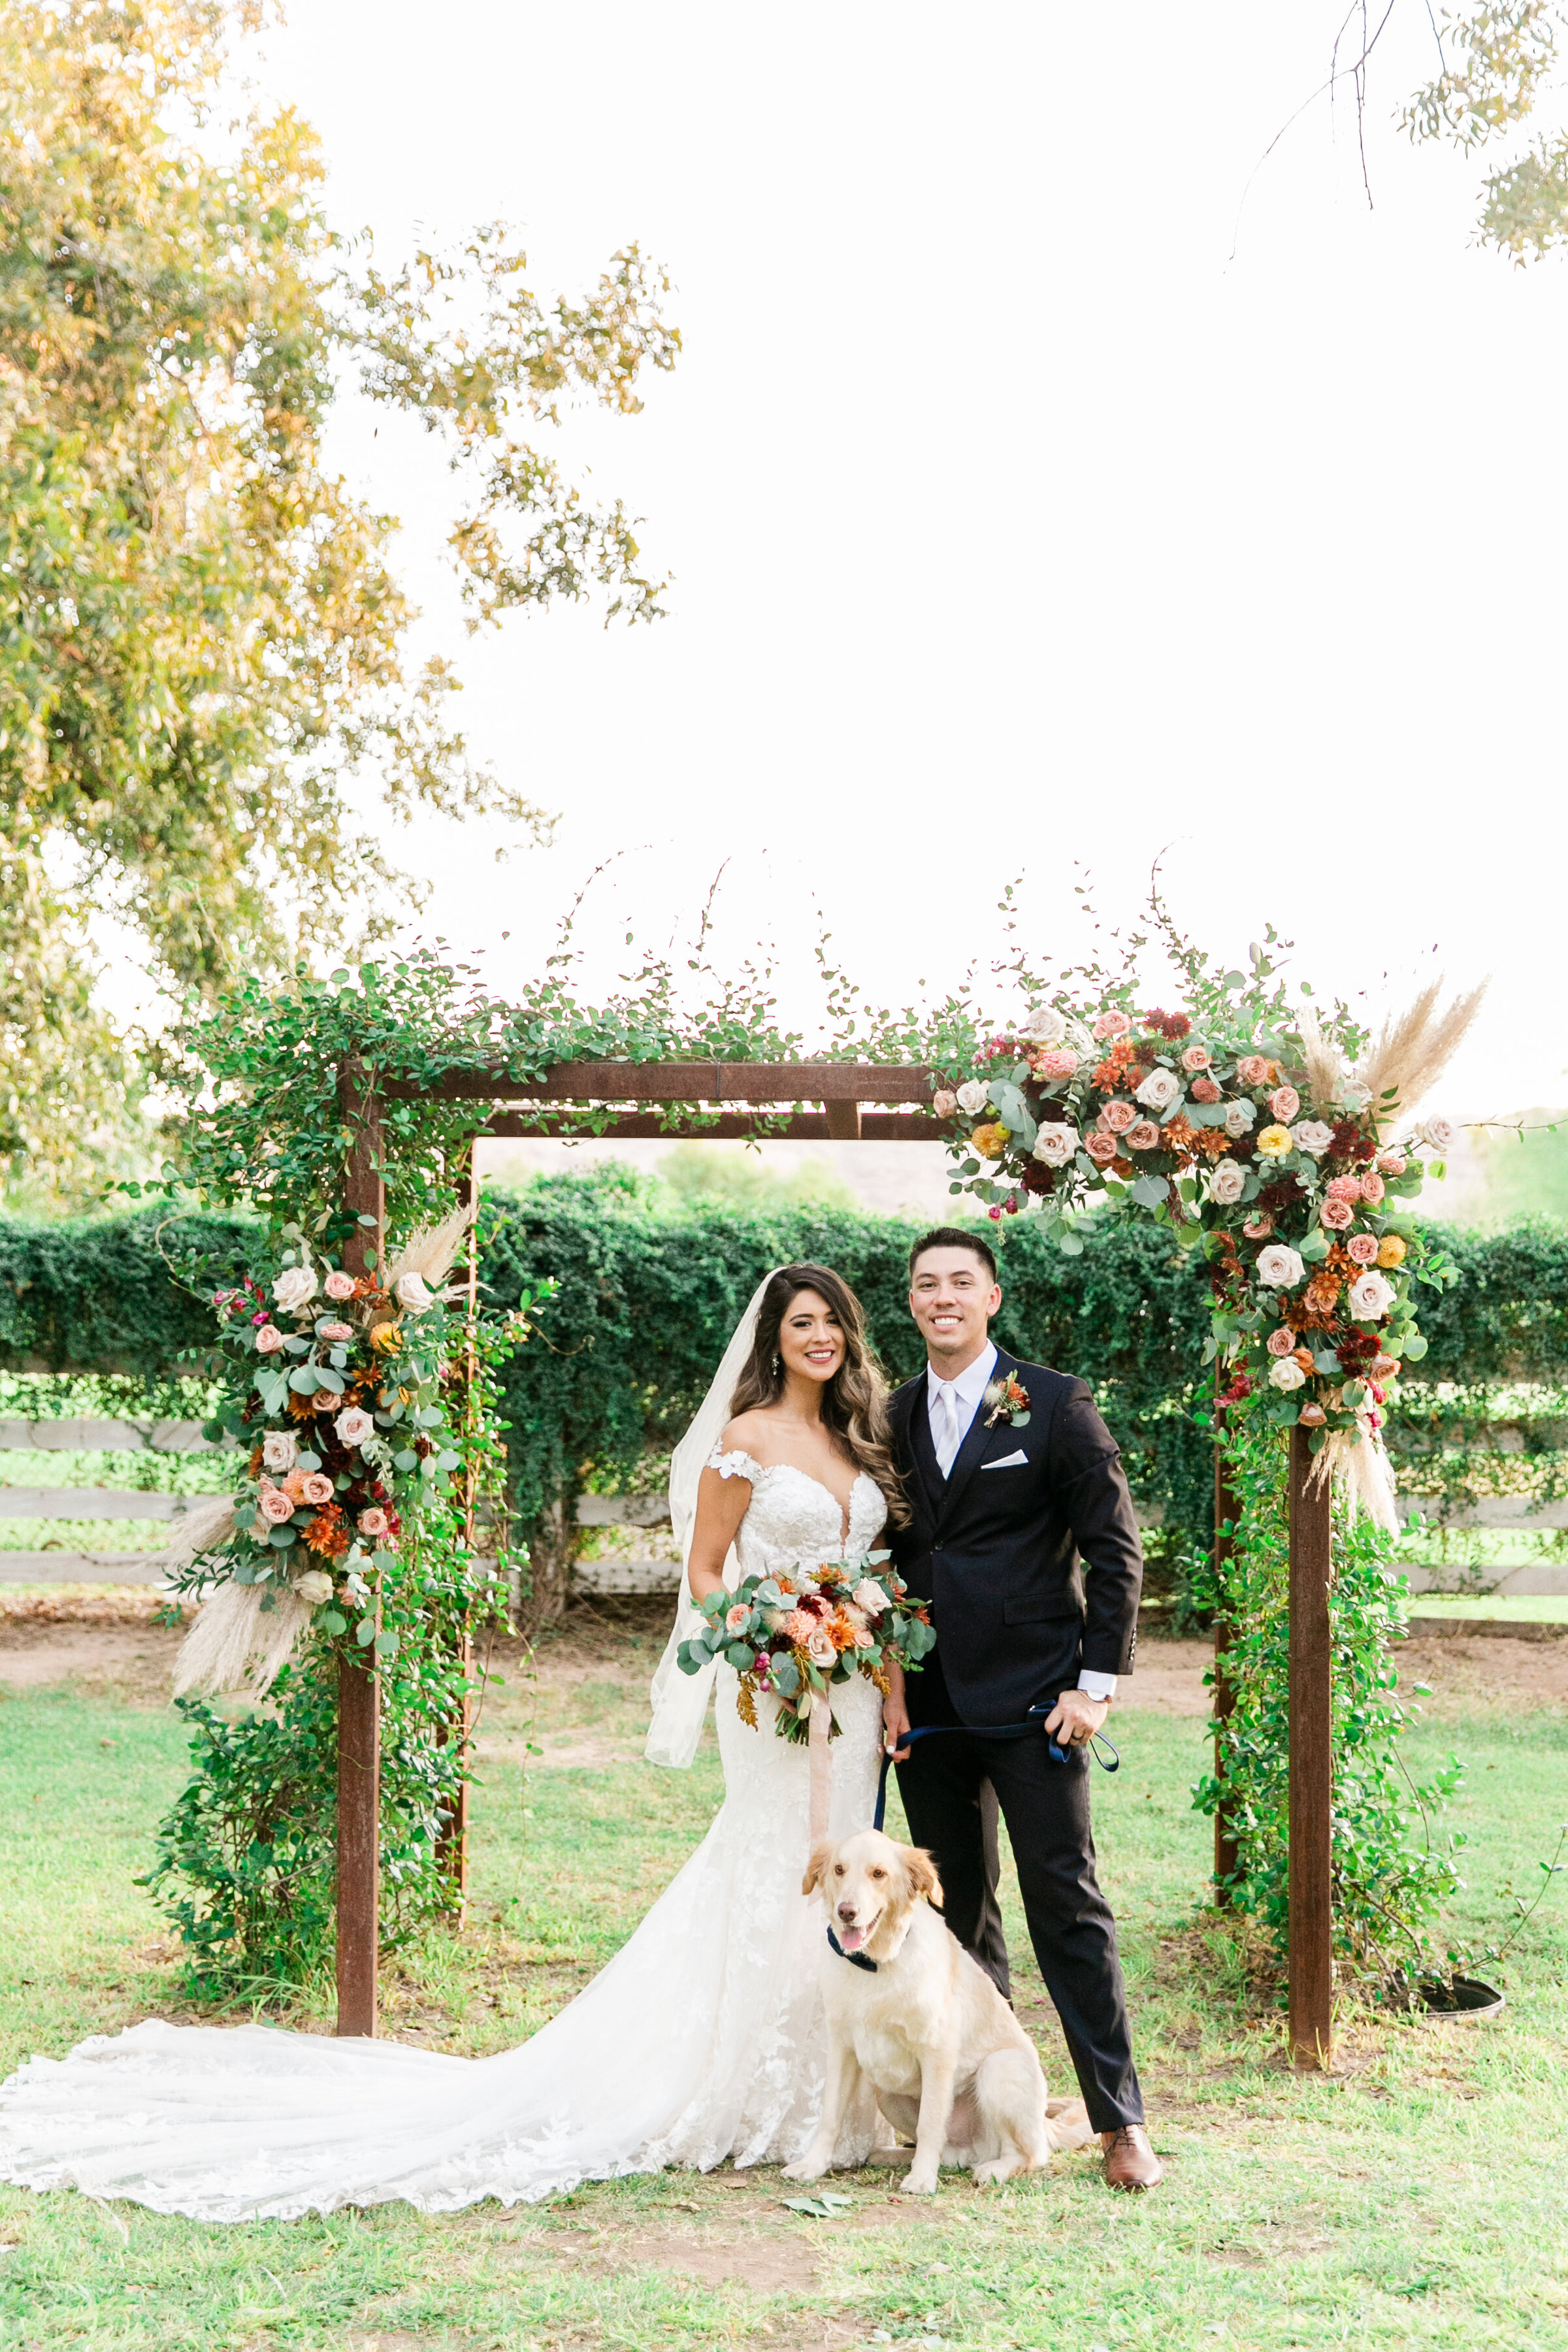 Karlie Colleen Photography - Phoenix Arizona - Farm At South Mountain Venue - Vanessa & Robert-689